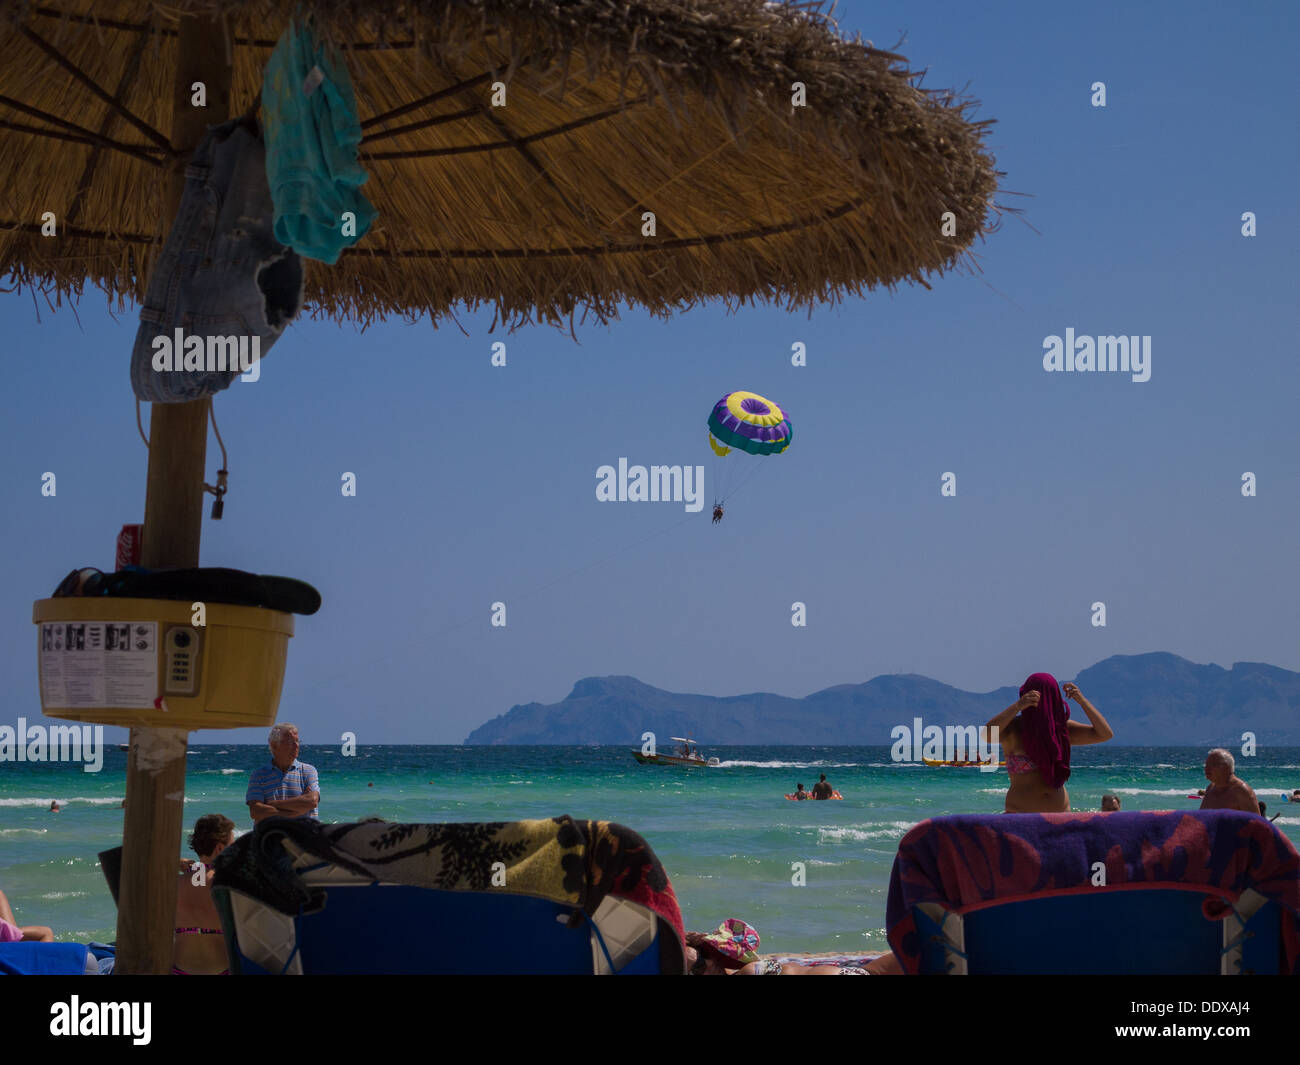 View from a sunbed on Alcudia Beach, Mallorca - Stock Image